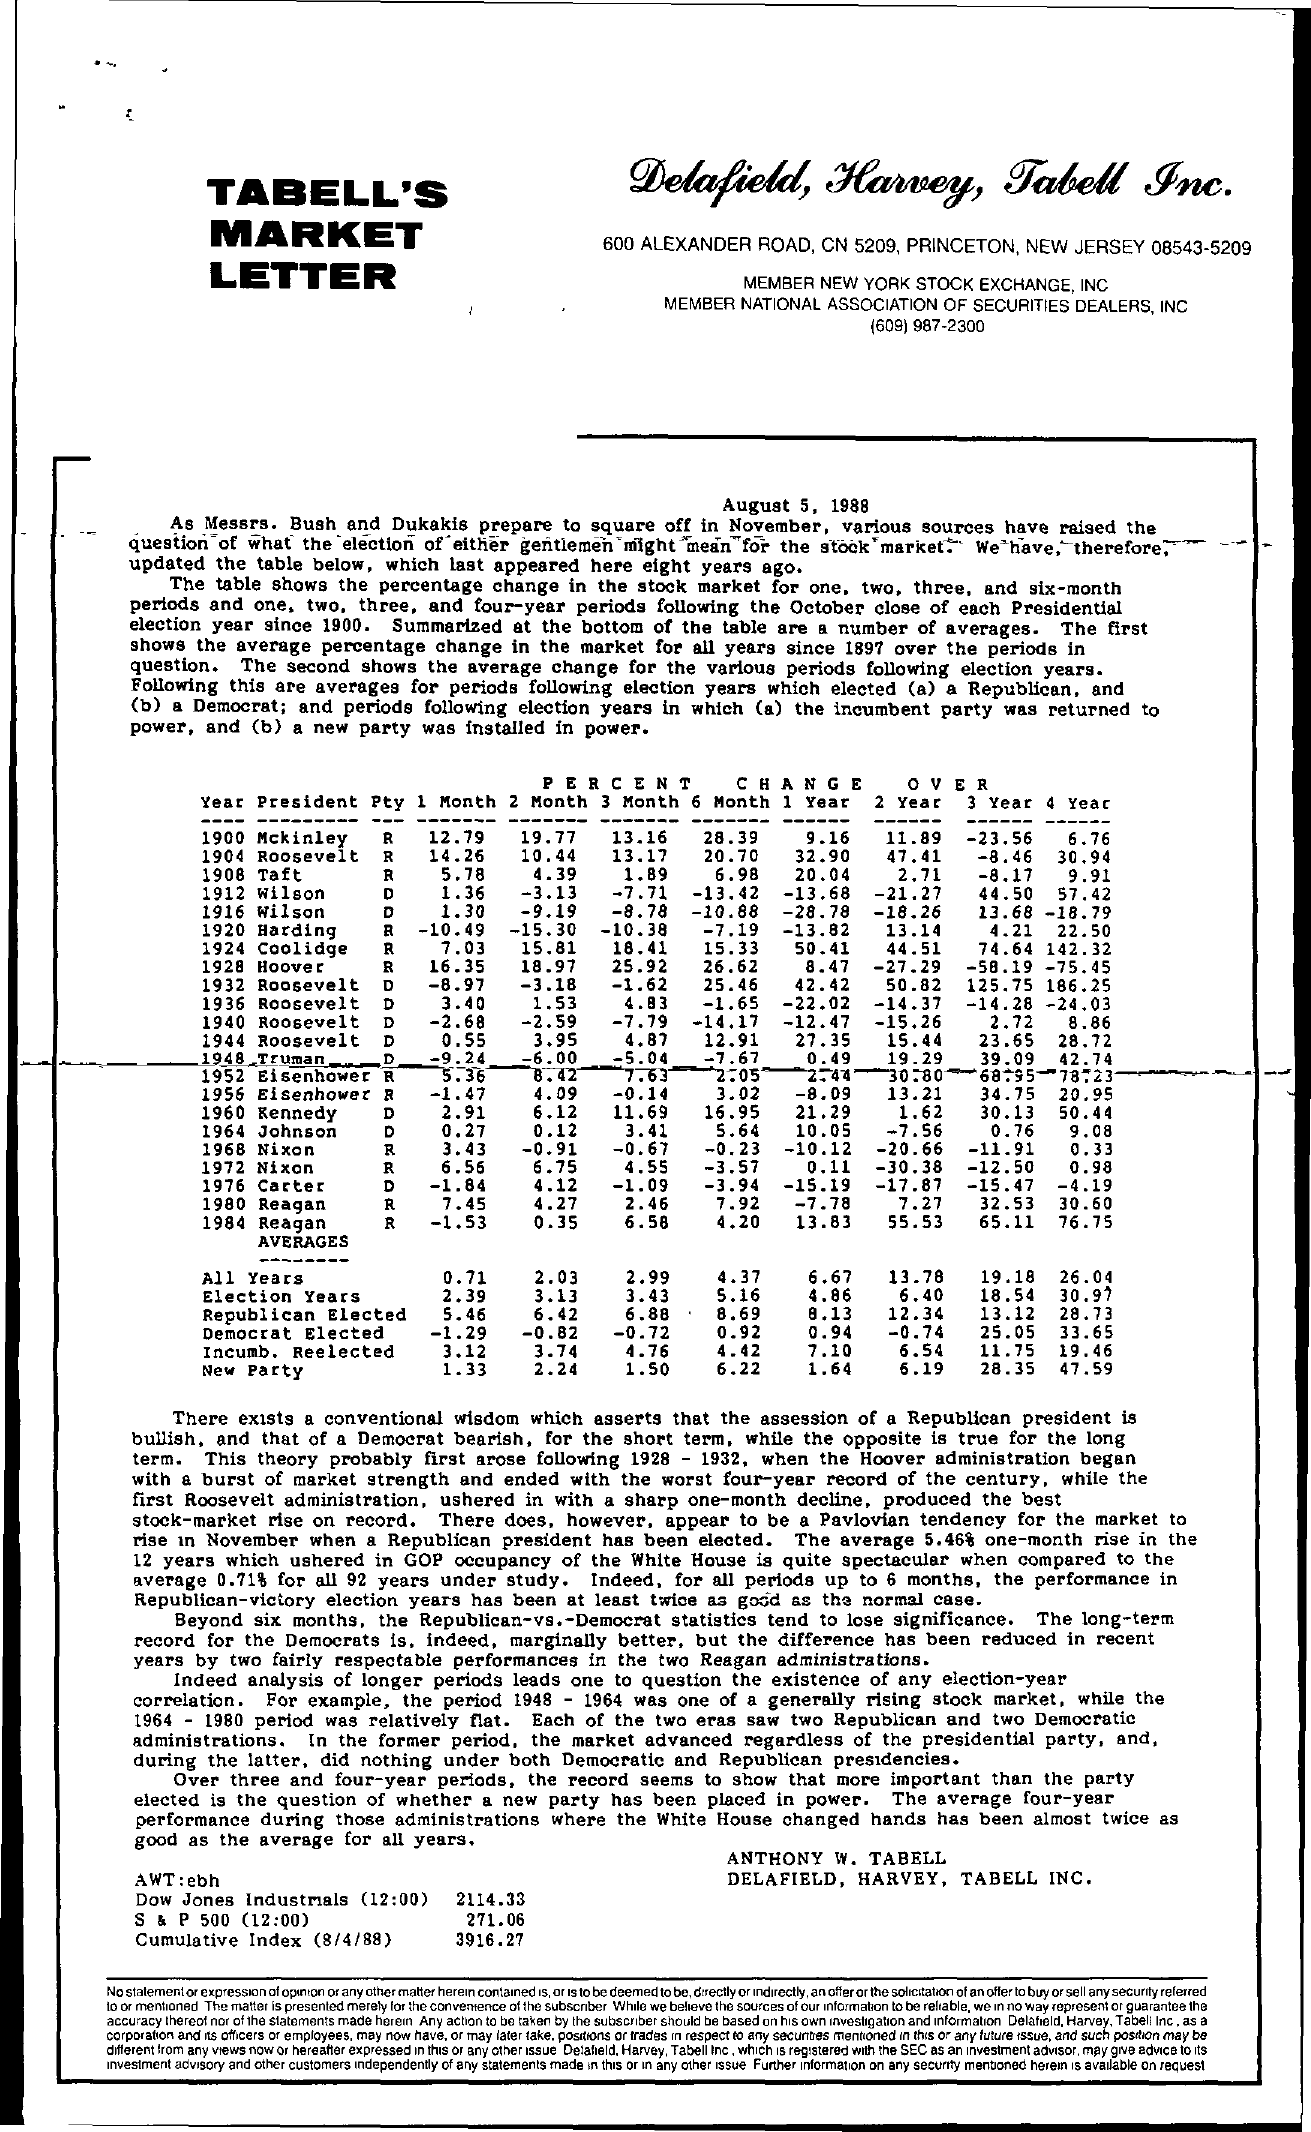 Tabell's Market Letter - August 05, 1988